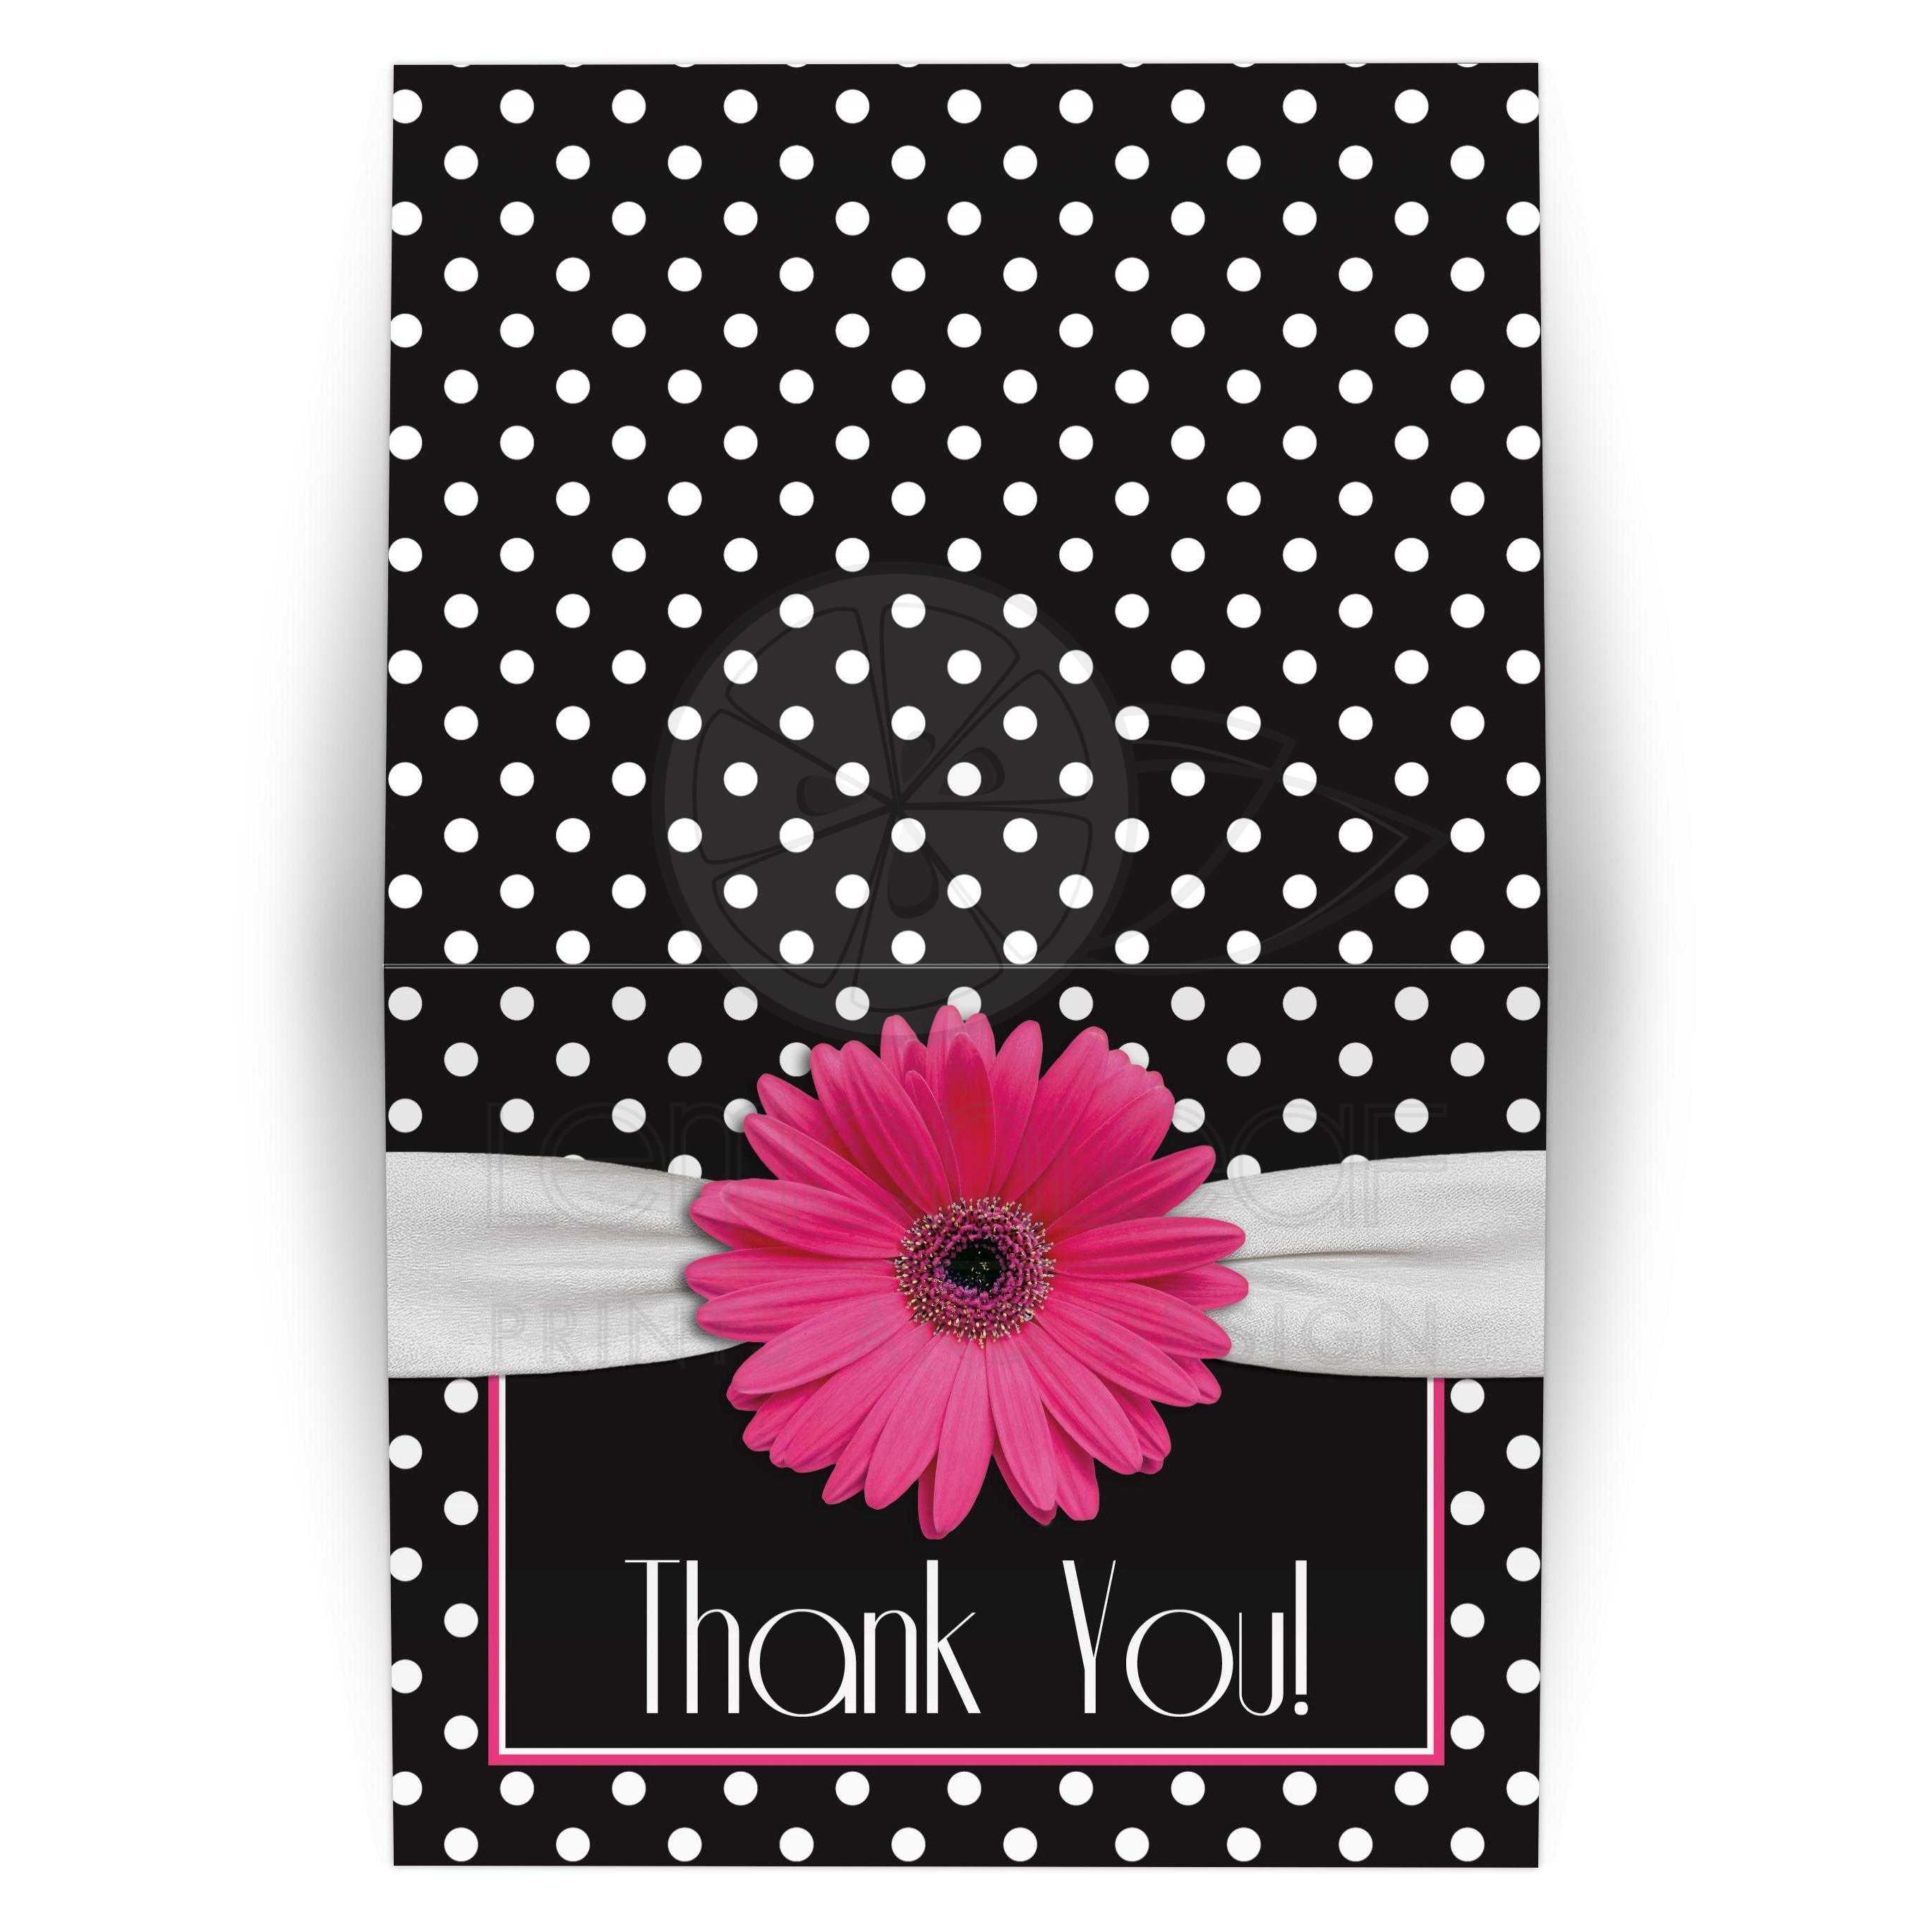 Pink Daisy Polka Dot Thank You Card Pink Black White